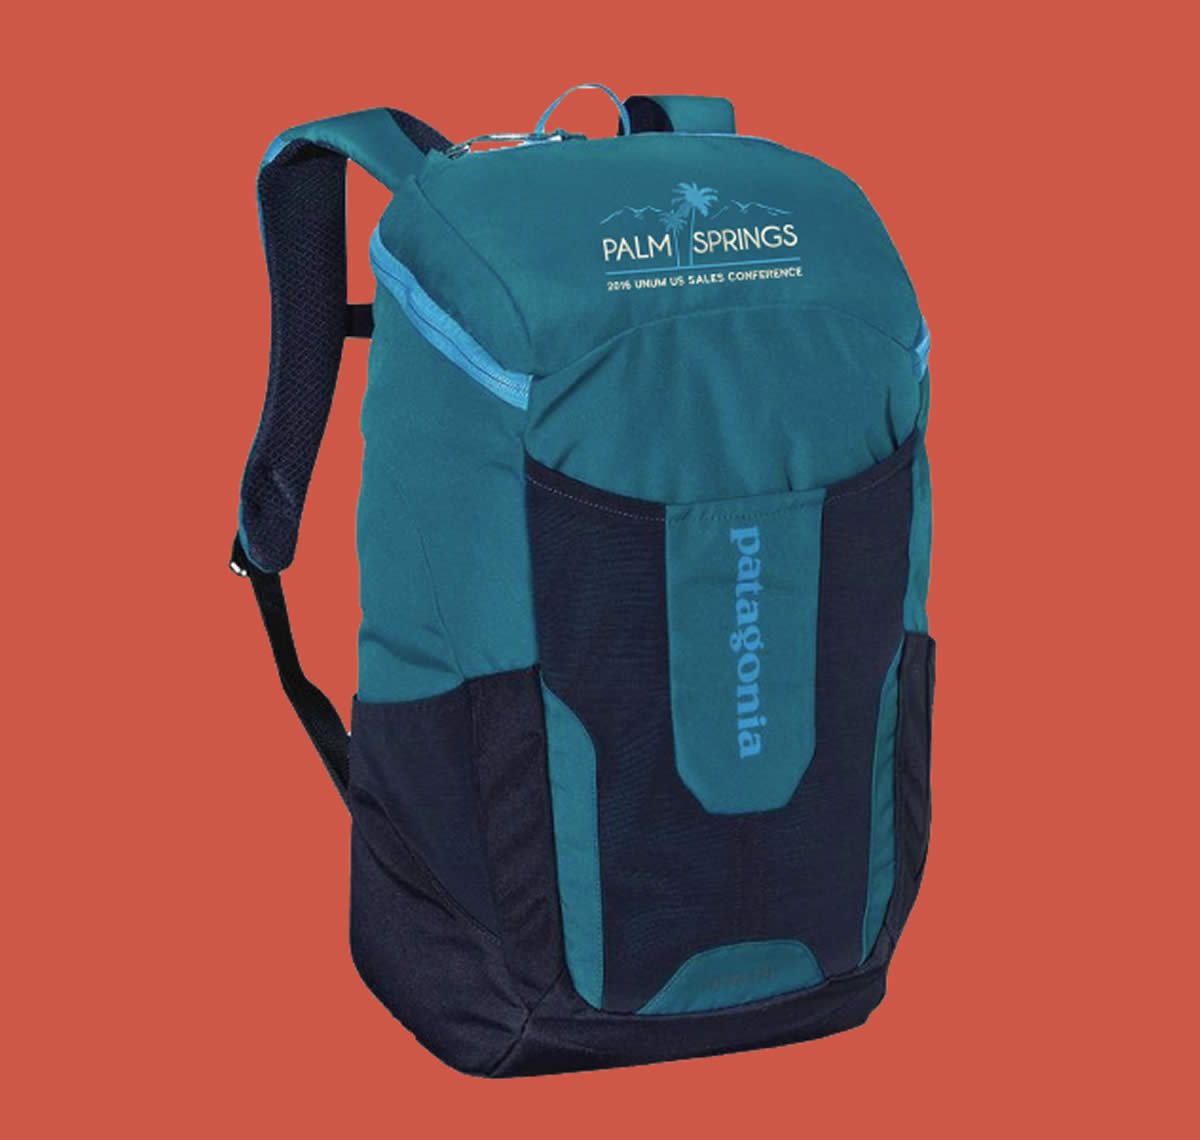 Unum Patagonia Pack Palm Springs